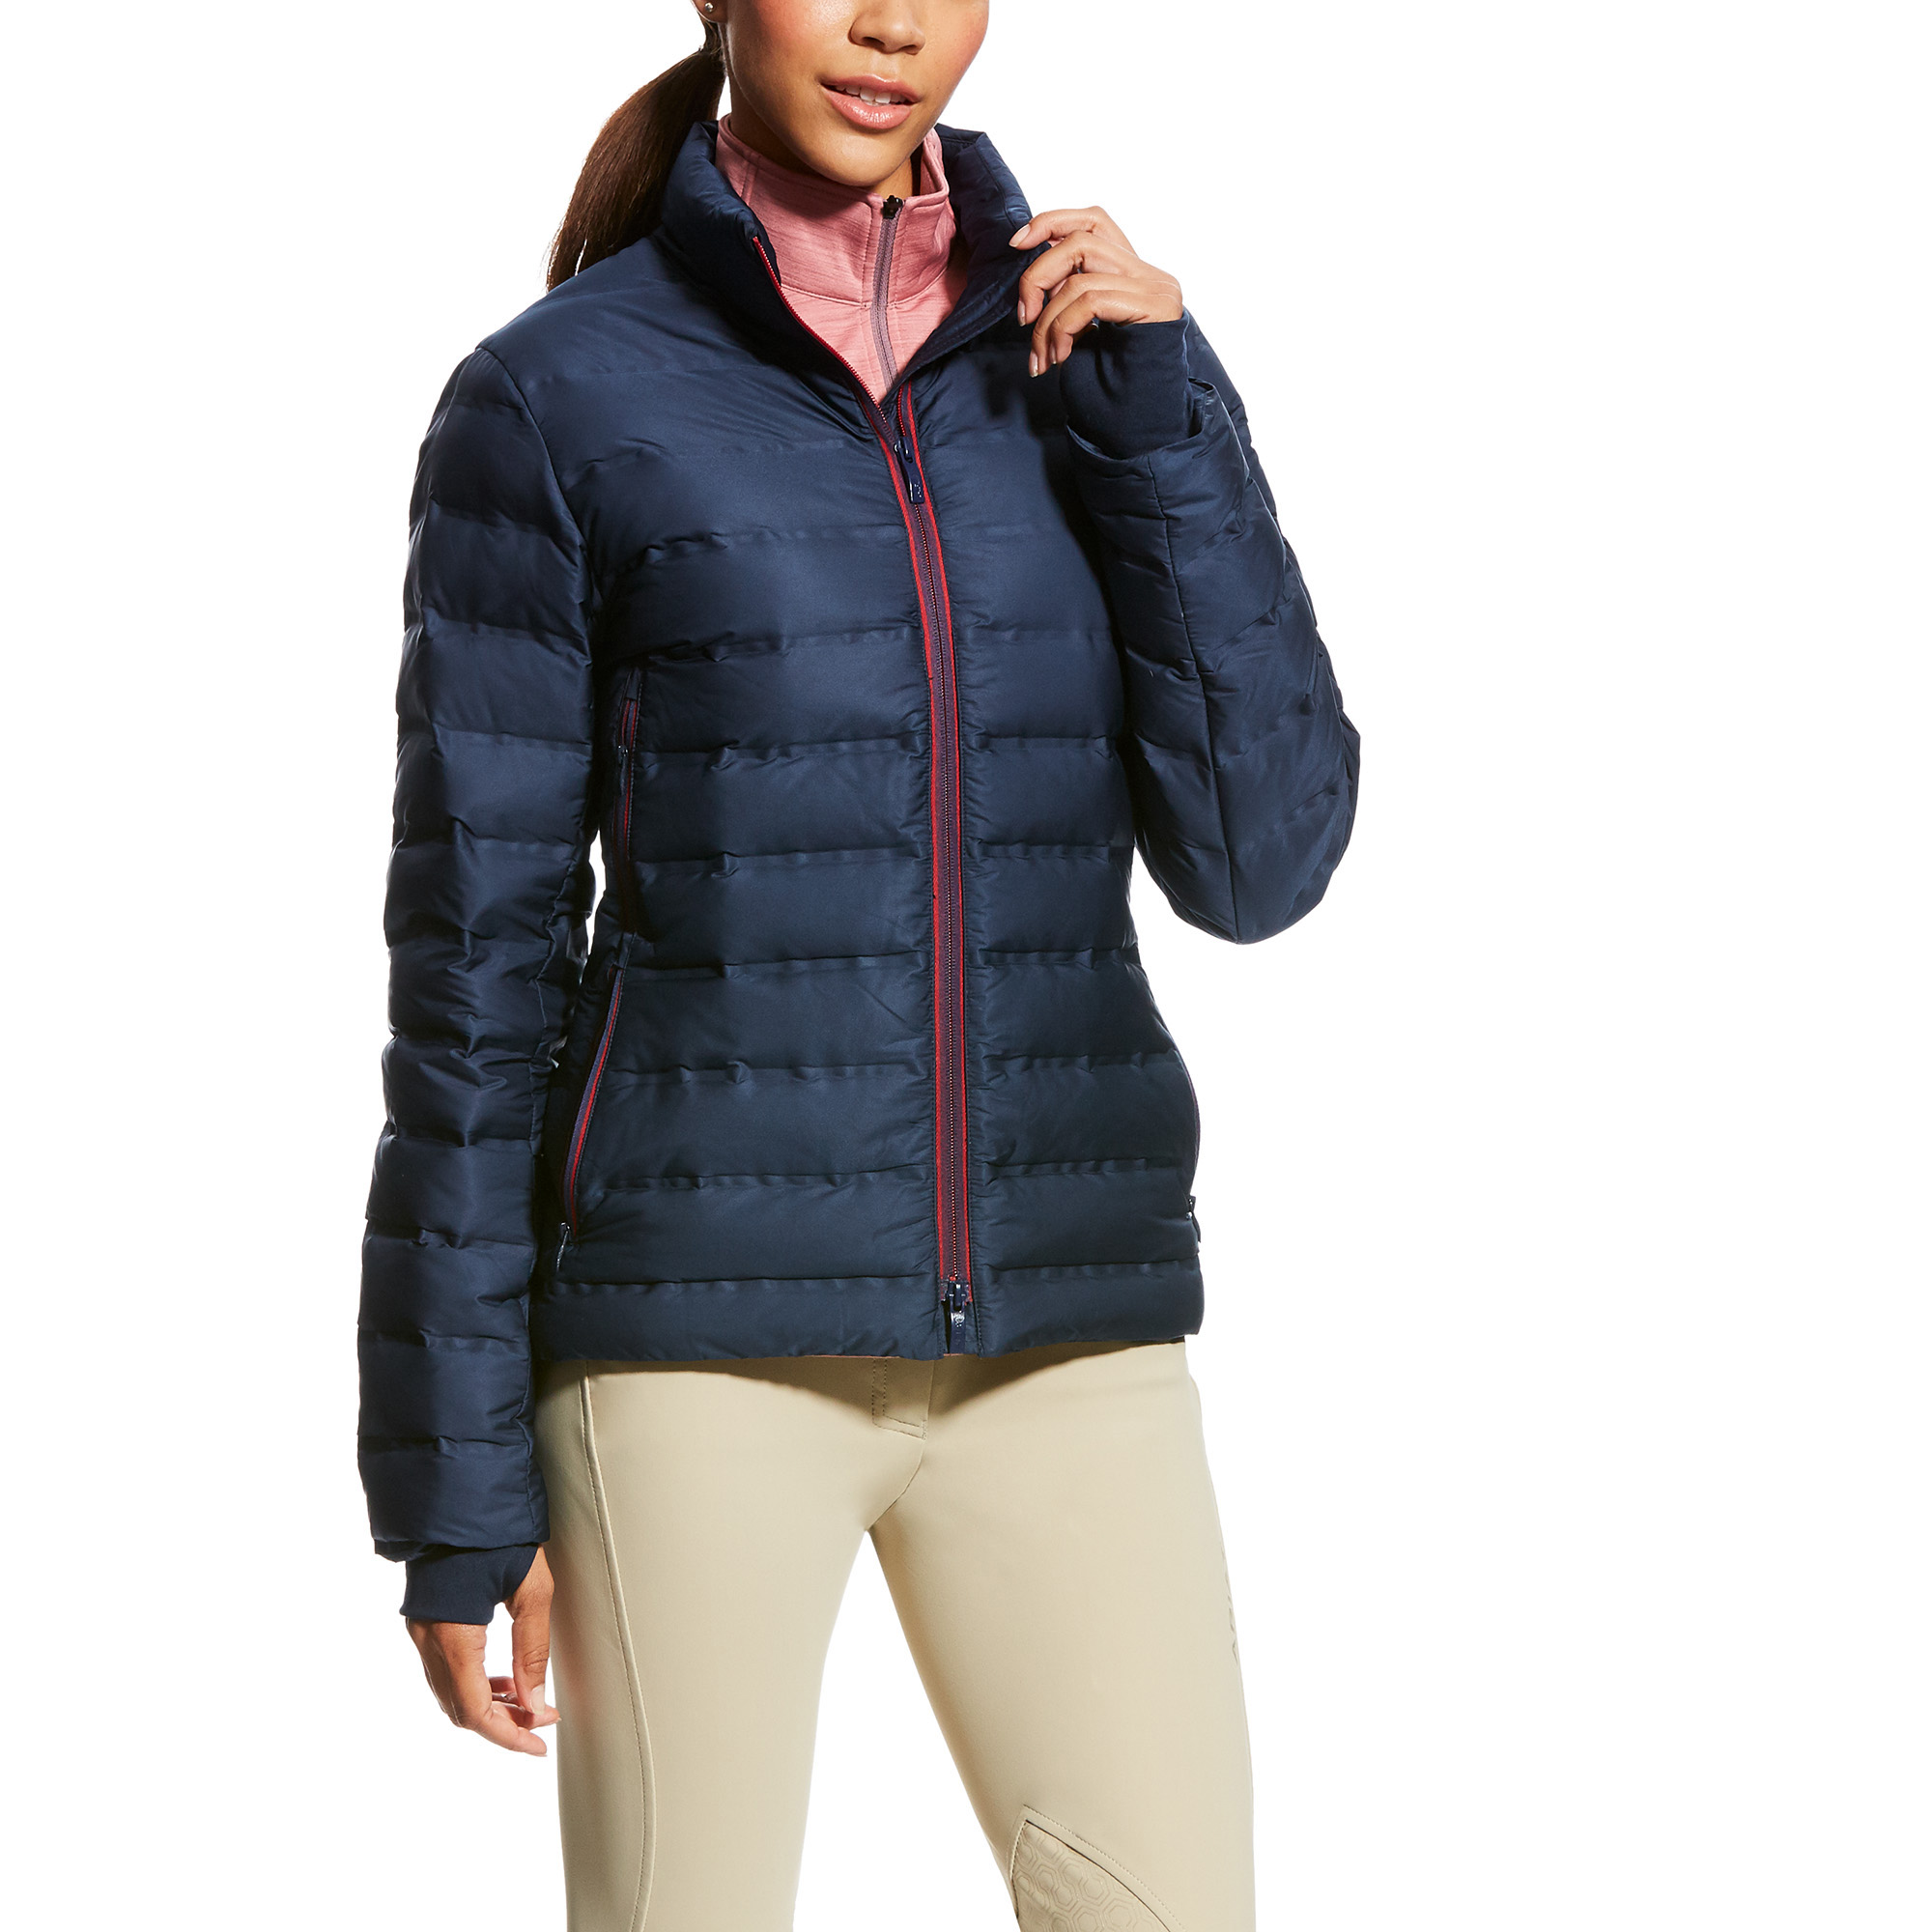 Navy Teal All Sizes Firefoot Aysgarth Womens Jacket Riding